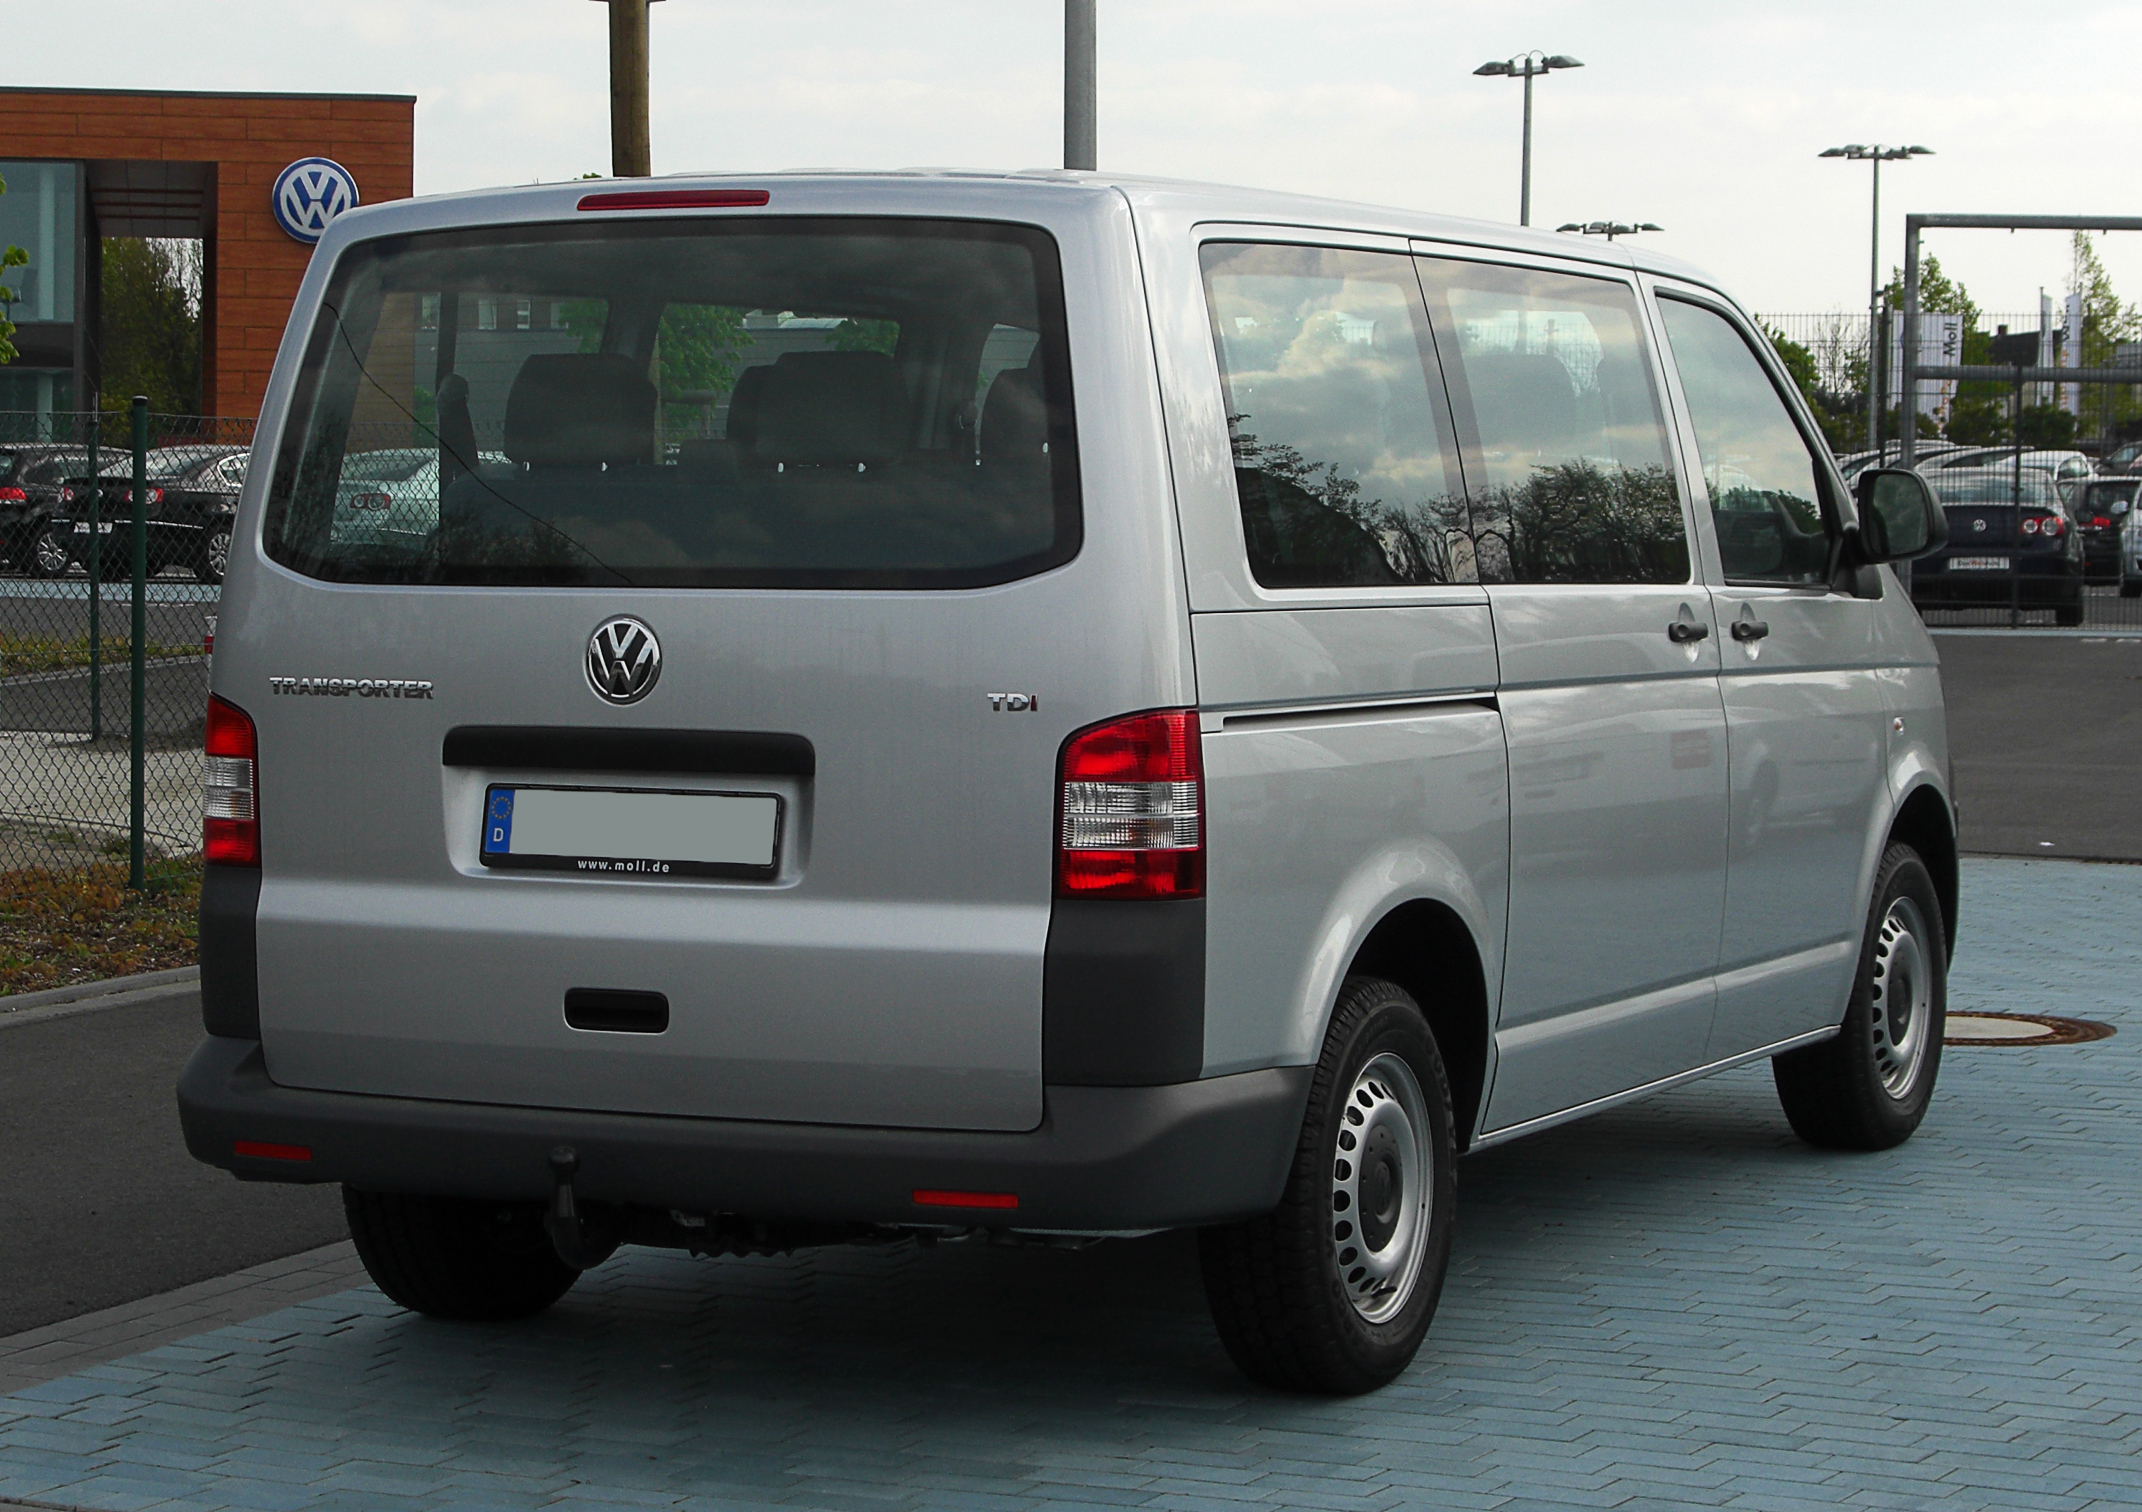 File:VW Transporter Kombi 2.0 TDI (T5, Facelift ...